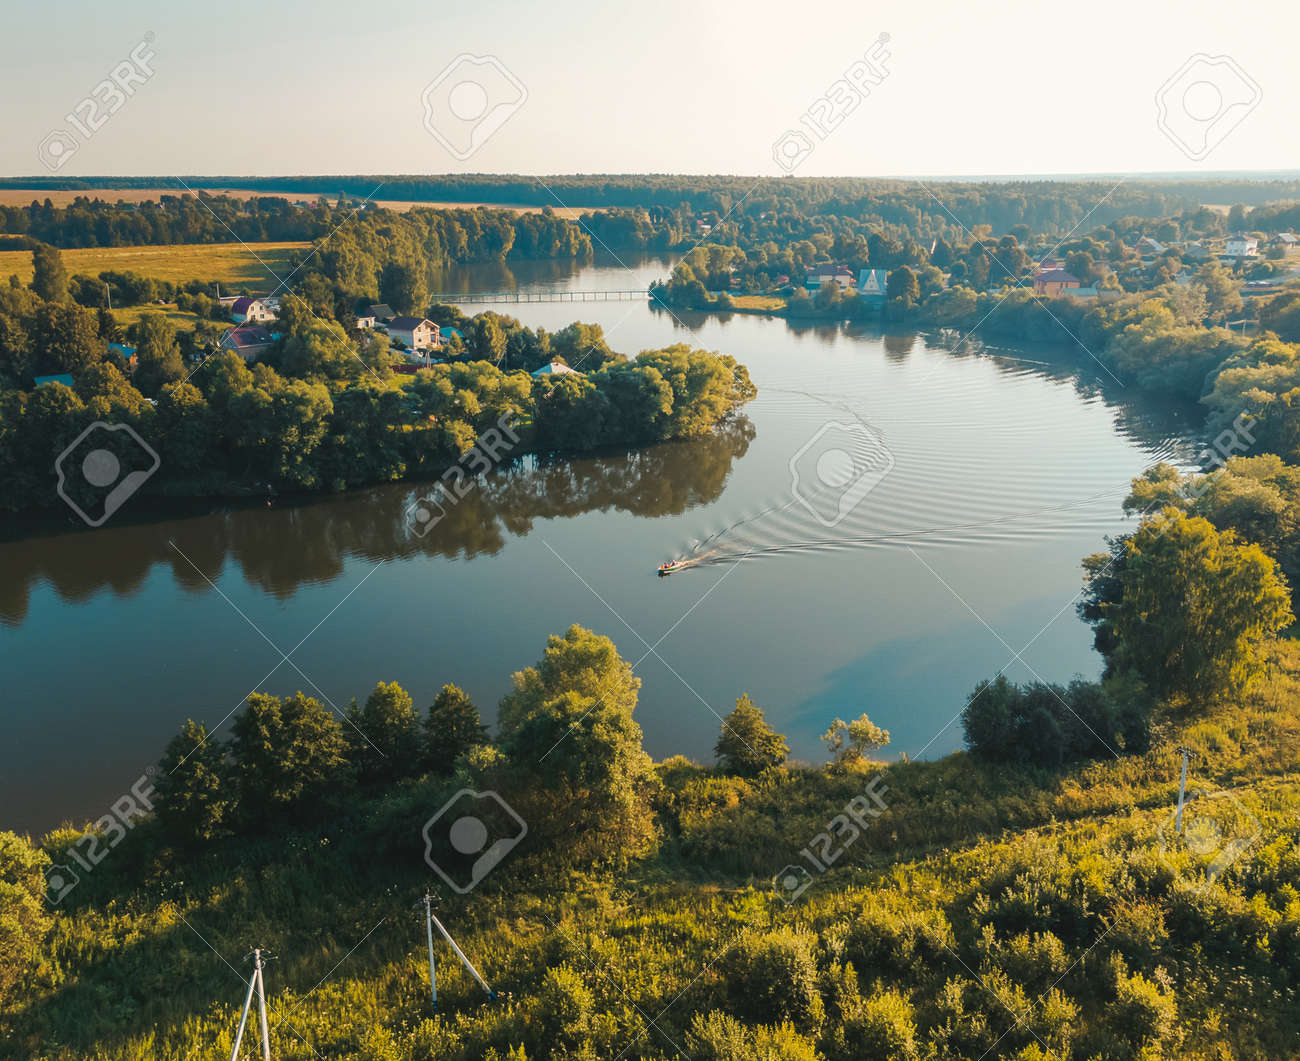 Aerial view of motor boat on river. Drone photography. Summer time. - 171661839